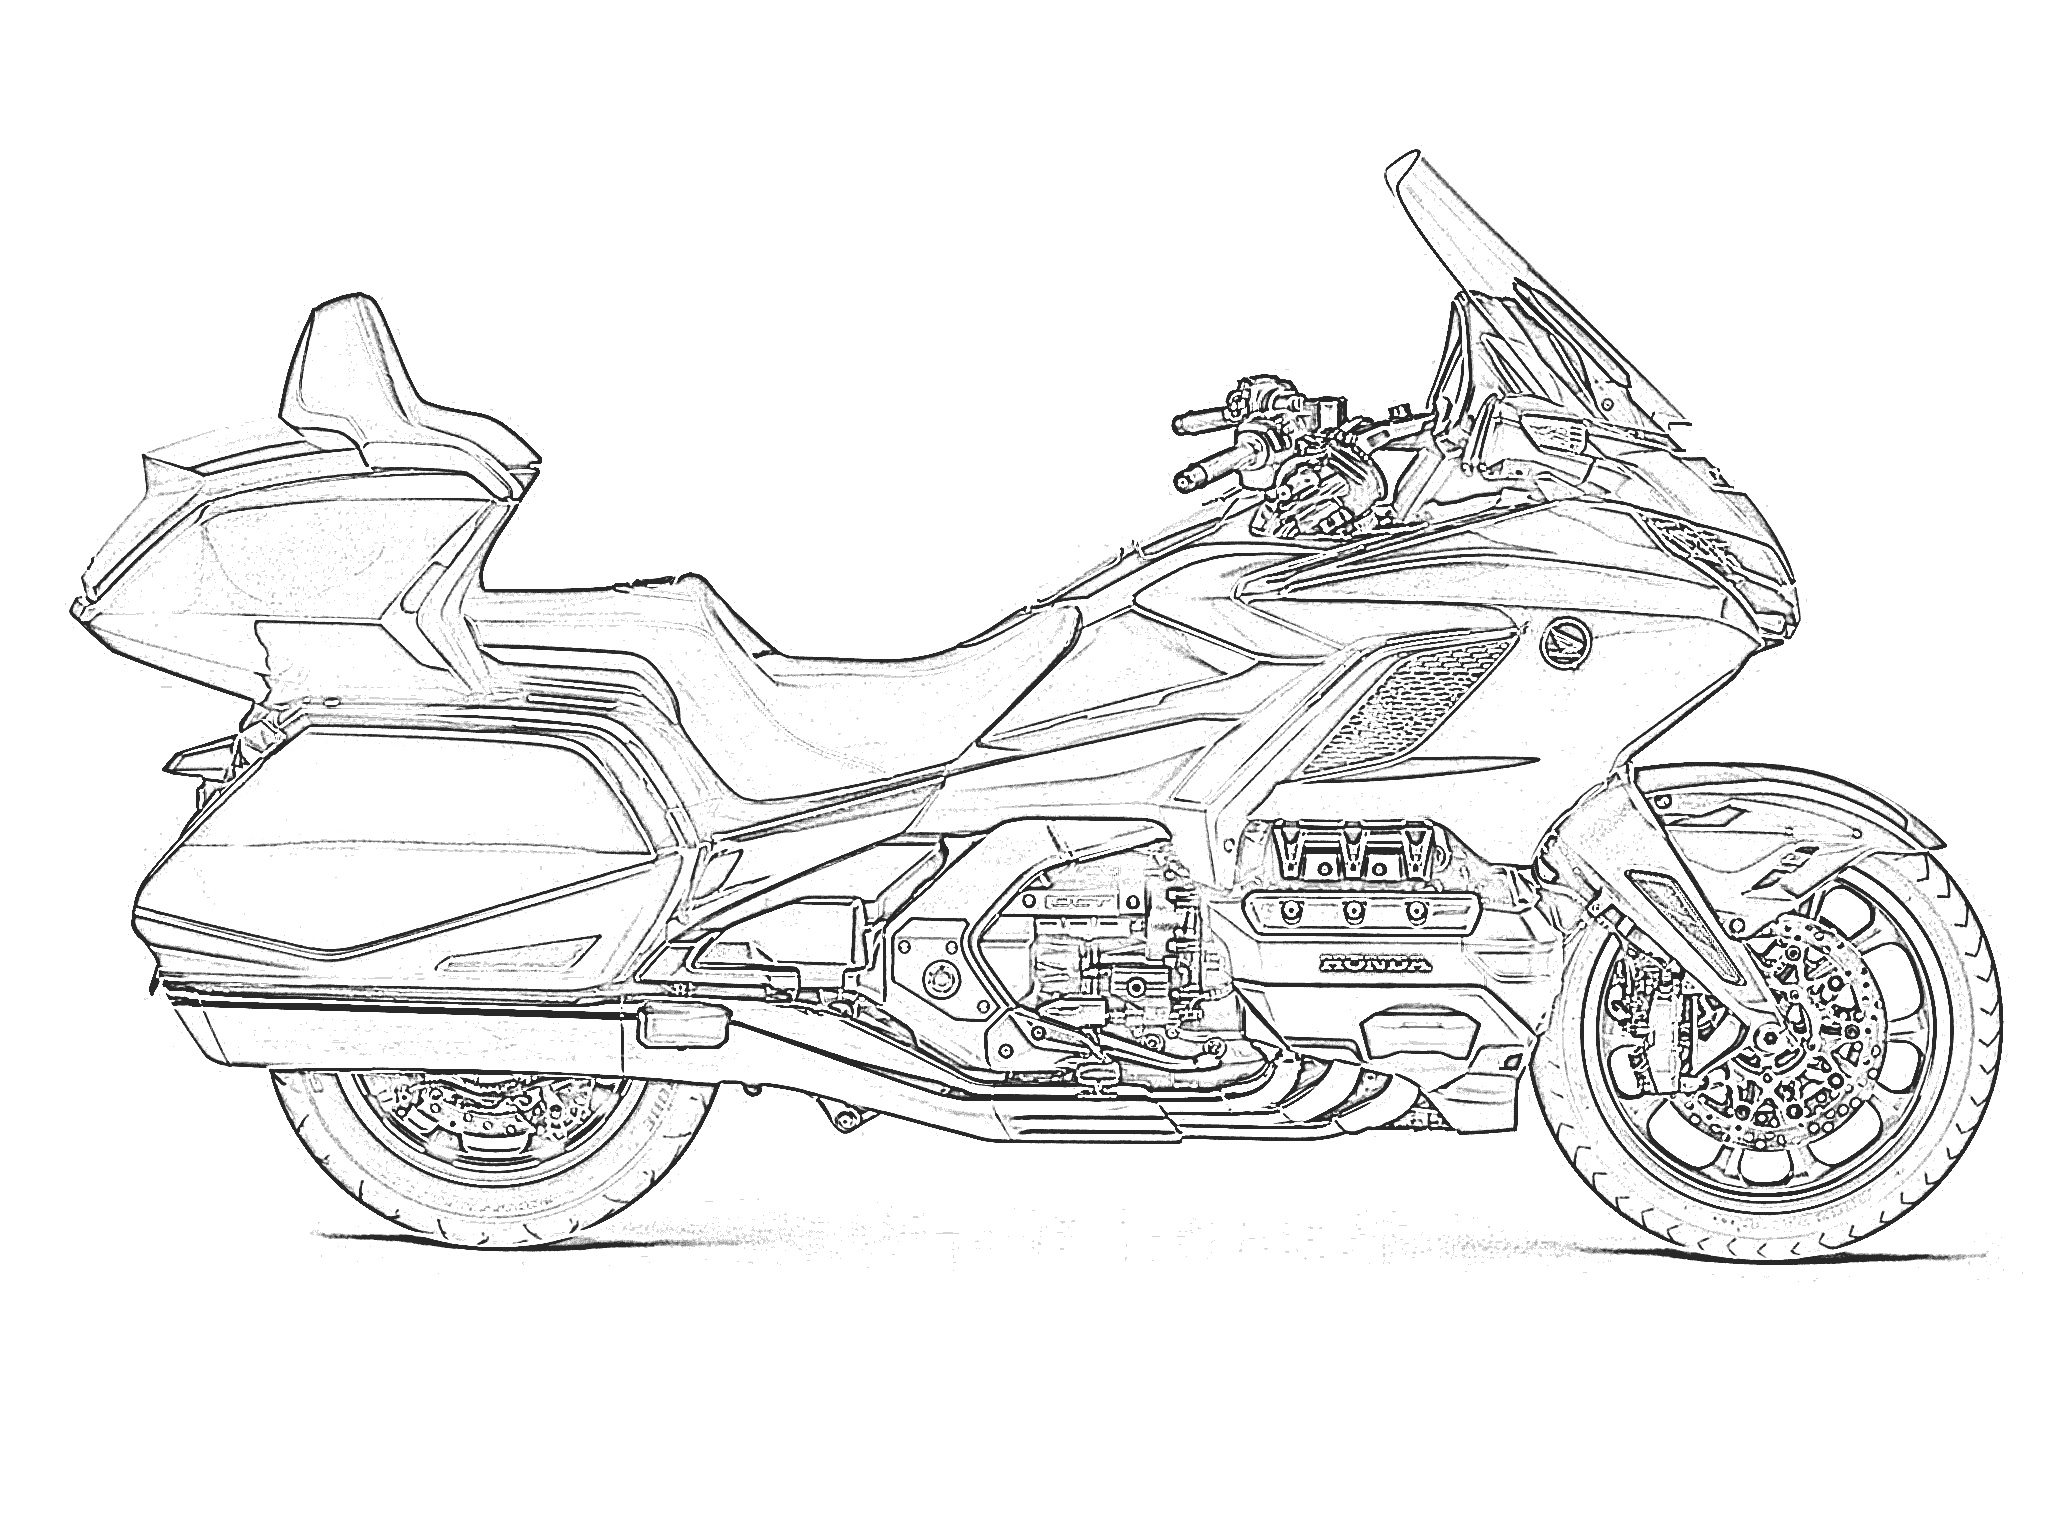 coloring pictures of motorcycles motorcycle coloring pages free printable for kids pictures coloring motorcycles of